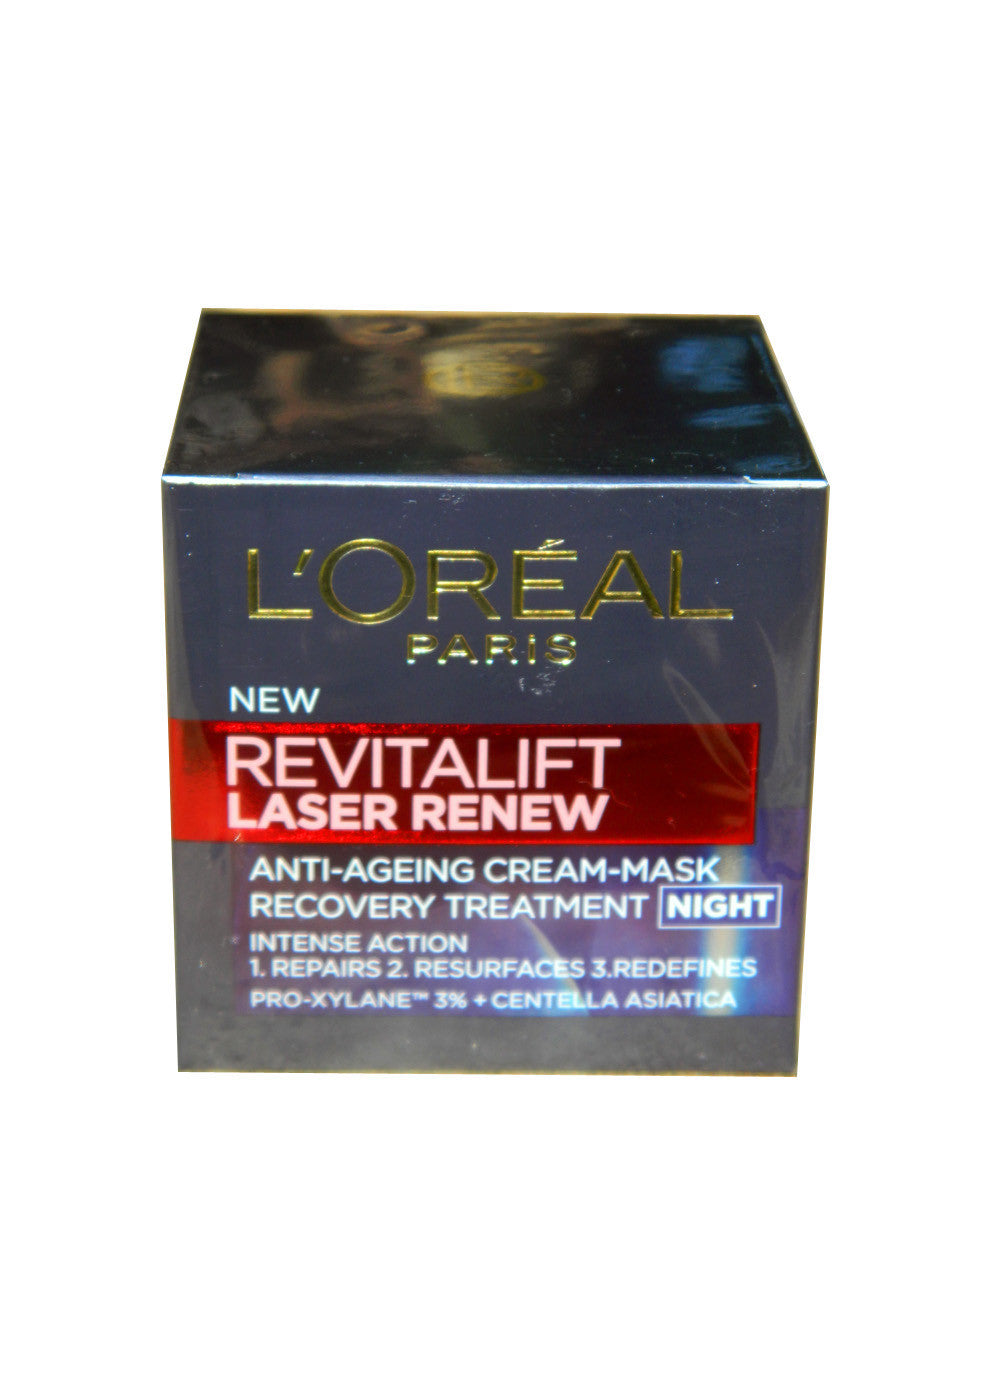 L'Oreal Revitalift Laser Renew Anti-Ageing Cream-Mask Recovery Treatment Night 50ml